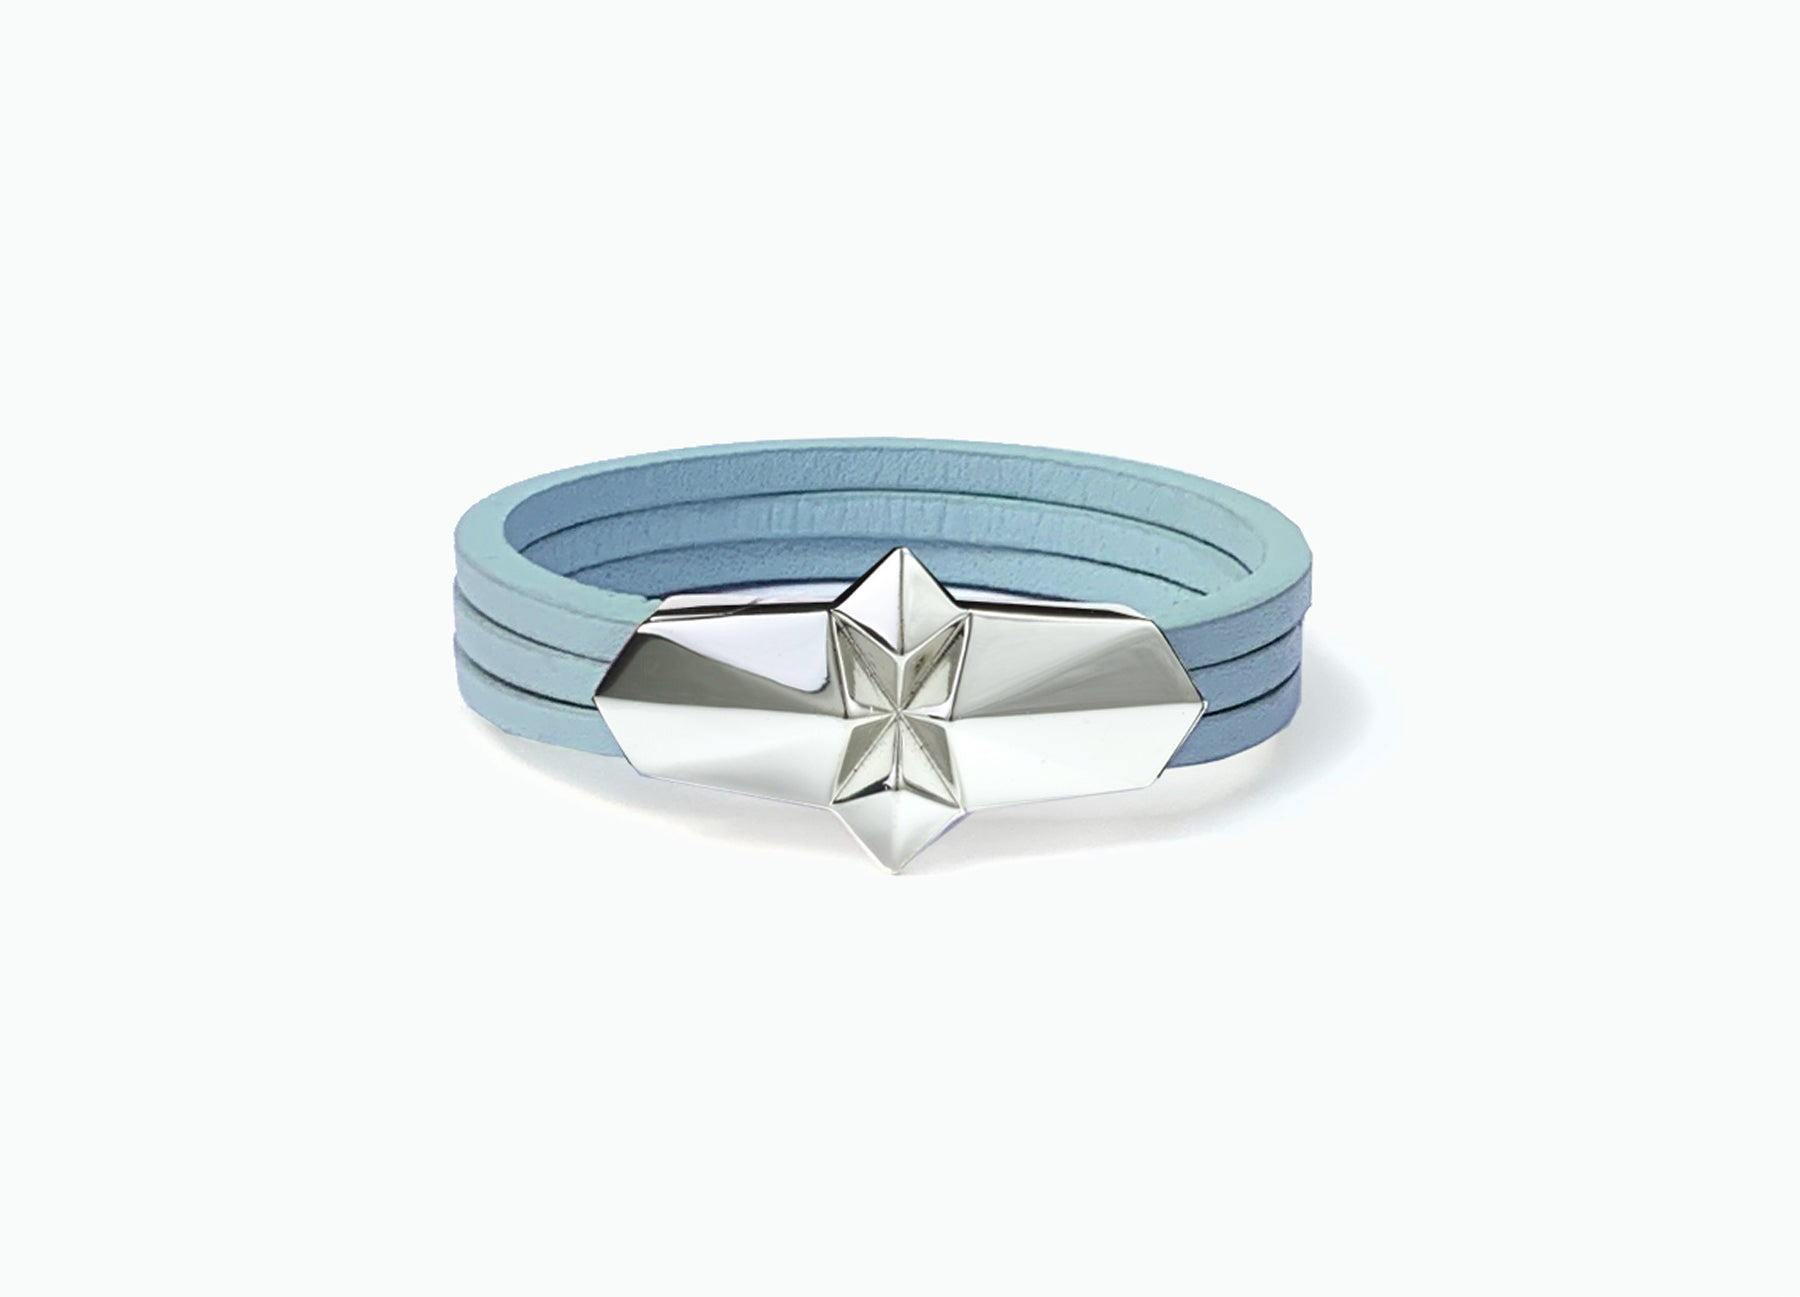 Leather Wrap Shard Bracelet with a white gold silver plated clasp in Babyl Blue fine Italian leather by Tomasz Donocik.